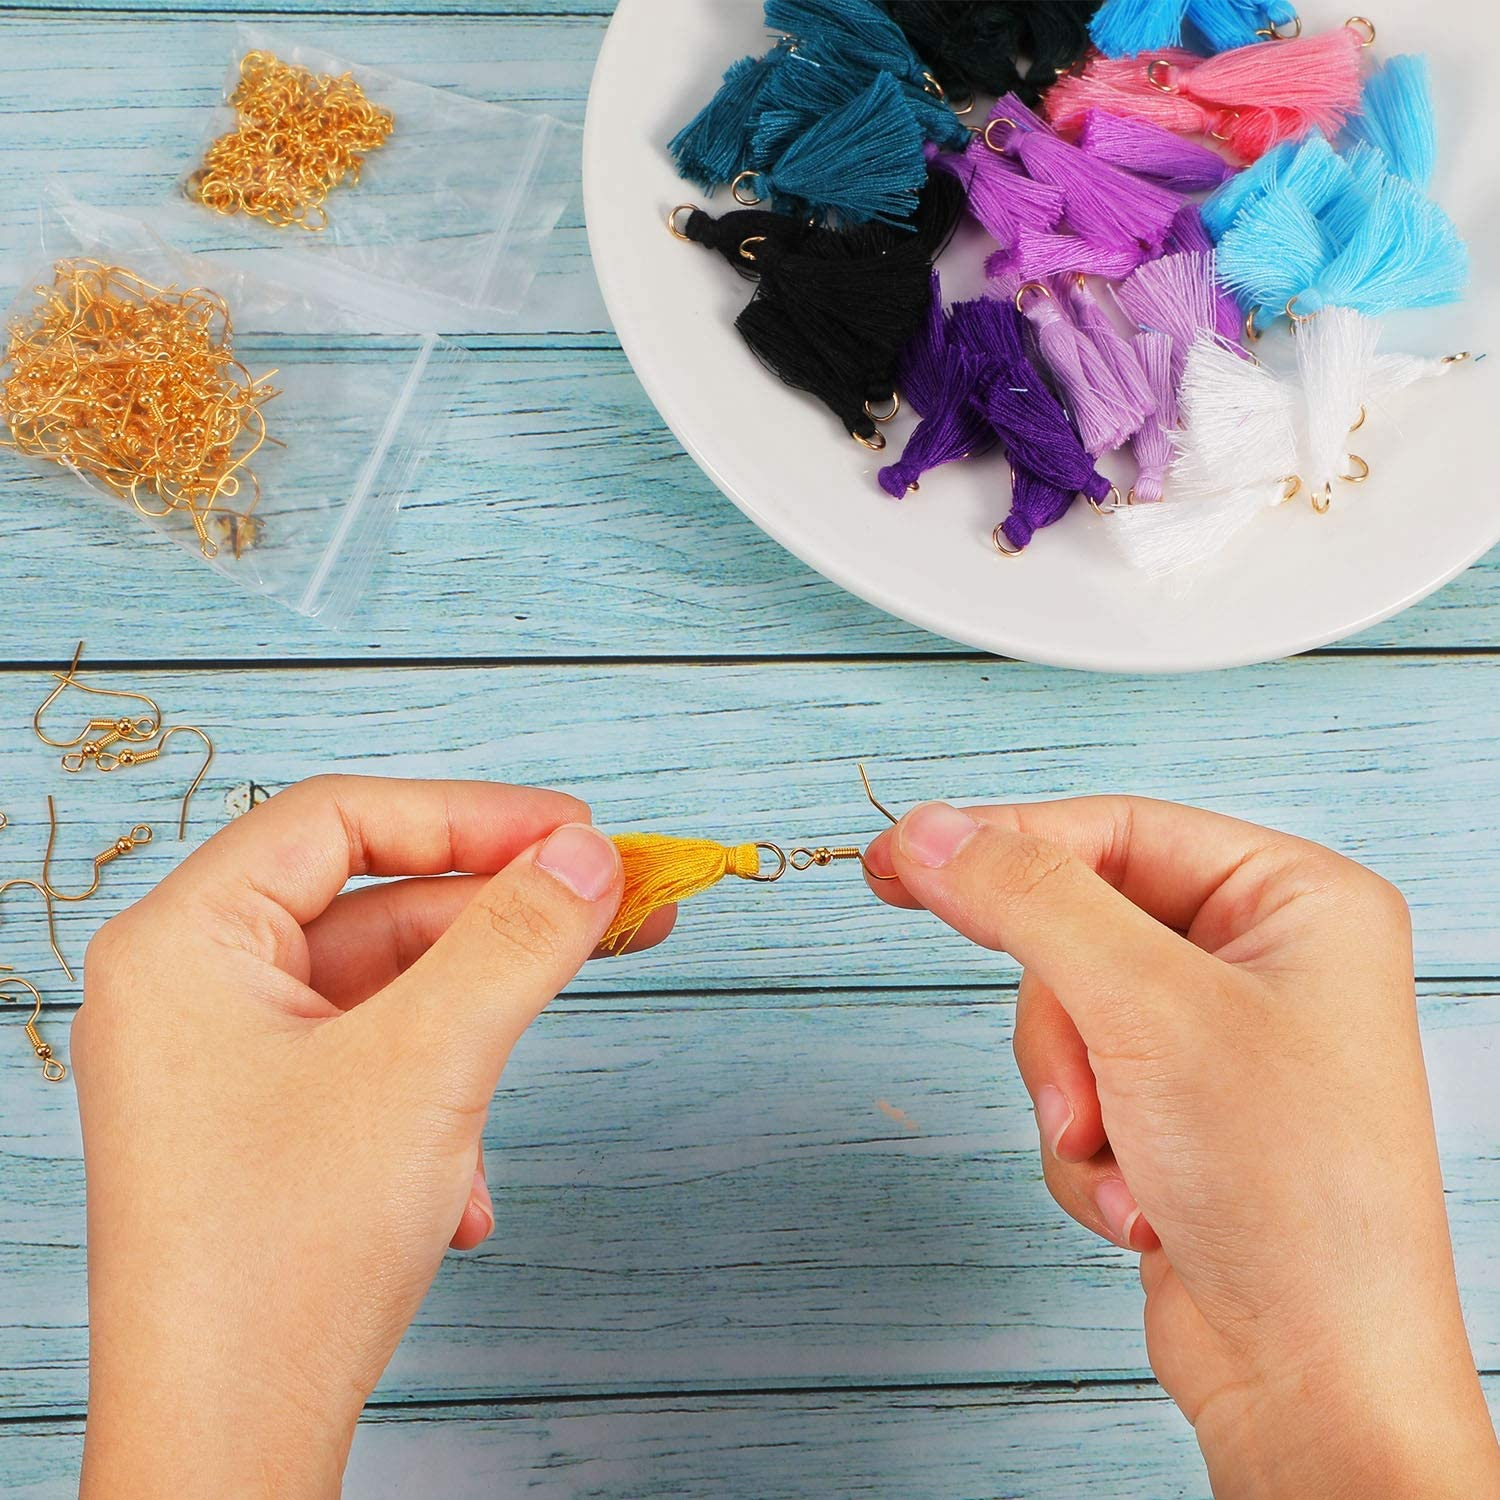 Chuangdi 420 Pieces Handmade DIY Mini Tassel Charms Multicolored Tiny Short Cotton Thread Tassels Gold Plated Earring Hooks and Jump Rings for Crafts and Earring Jewelry Making